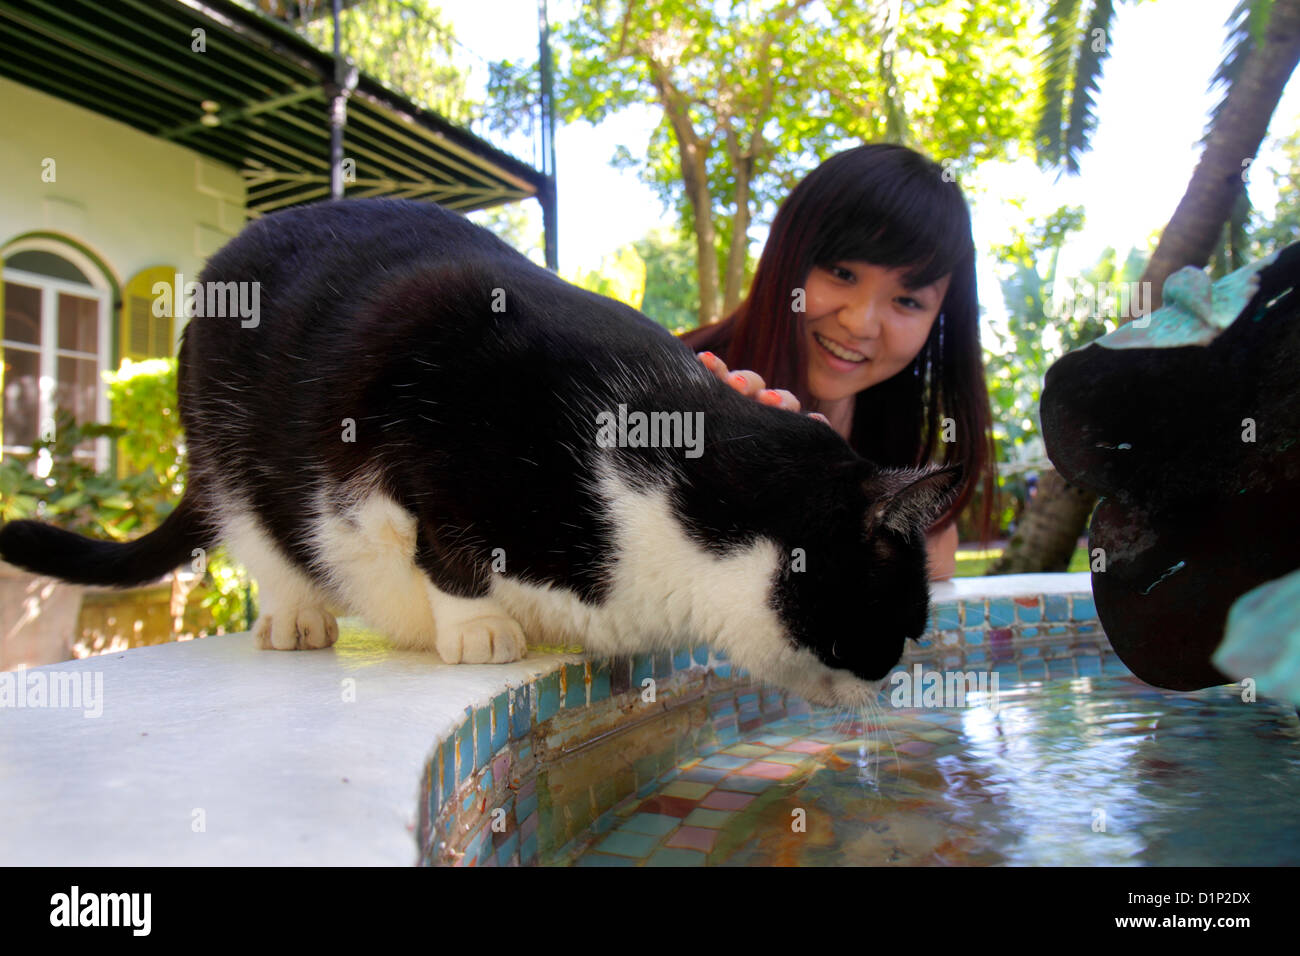 Florida Key West Florida Keys Whitehead Street The Ernest Hemingway Home & and Museum cat Asian woman reaching for Stock Photo